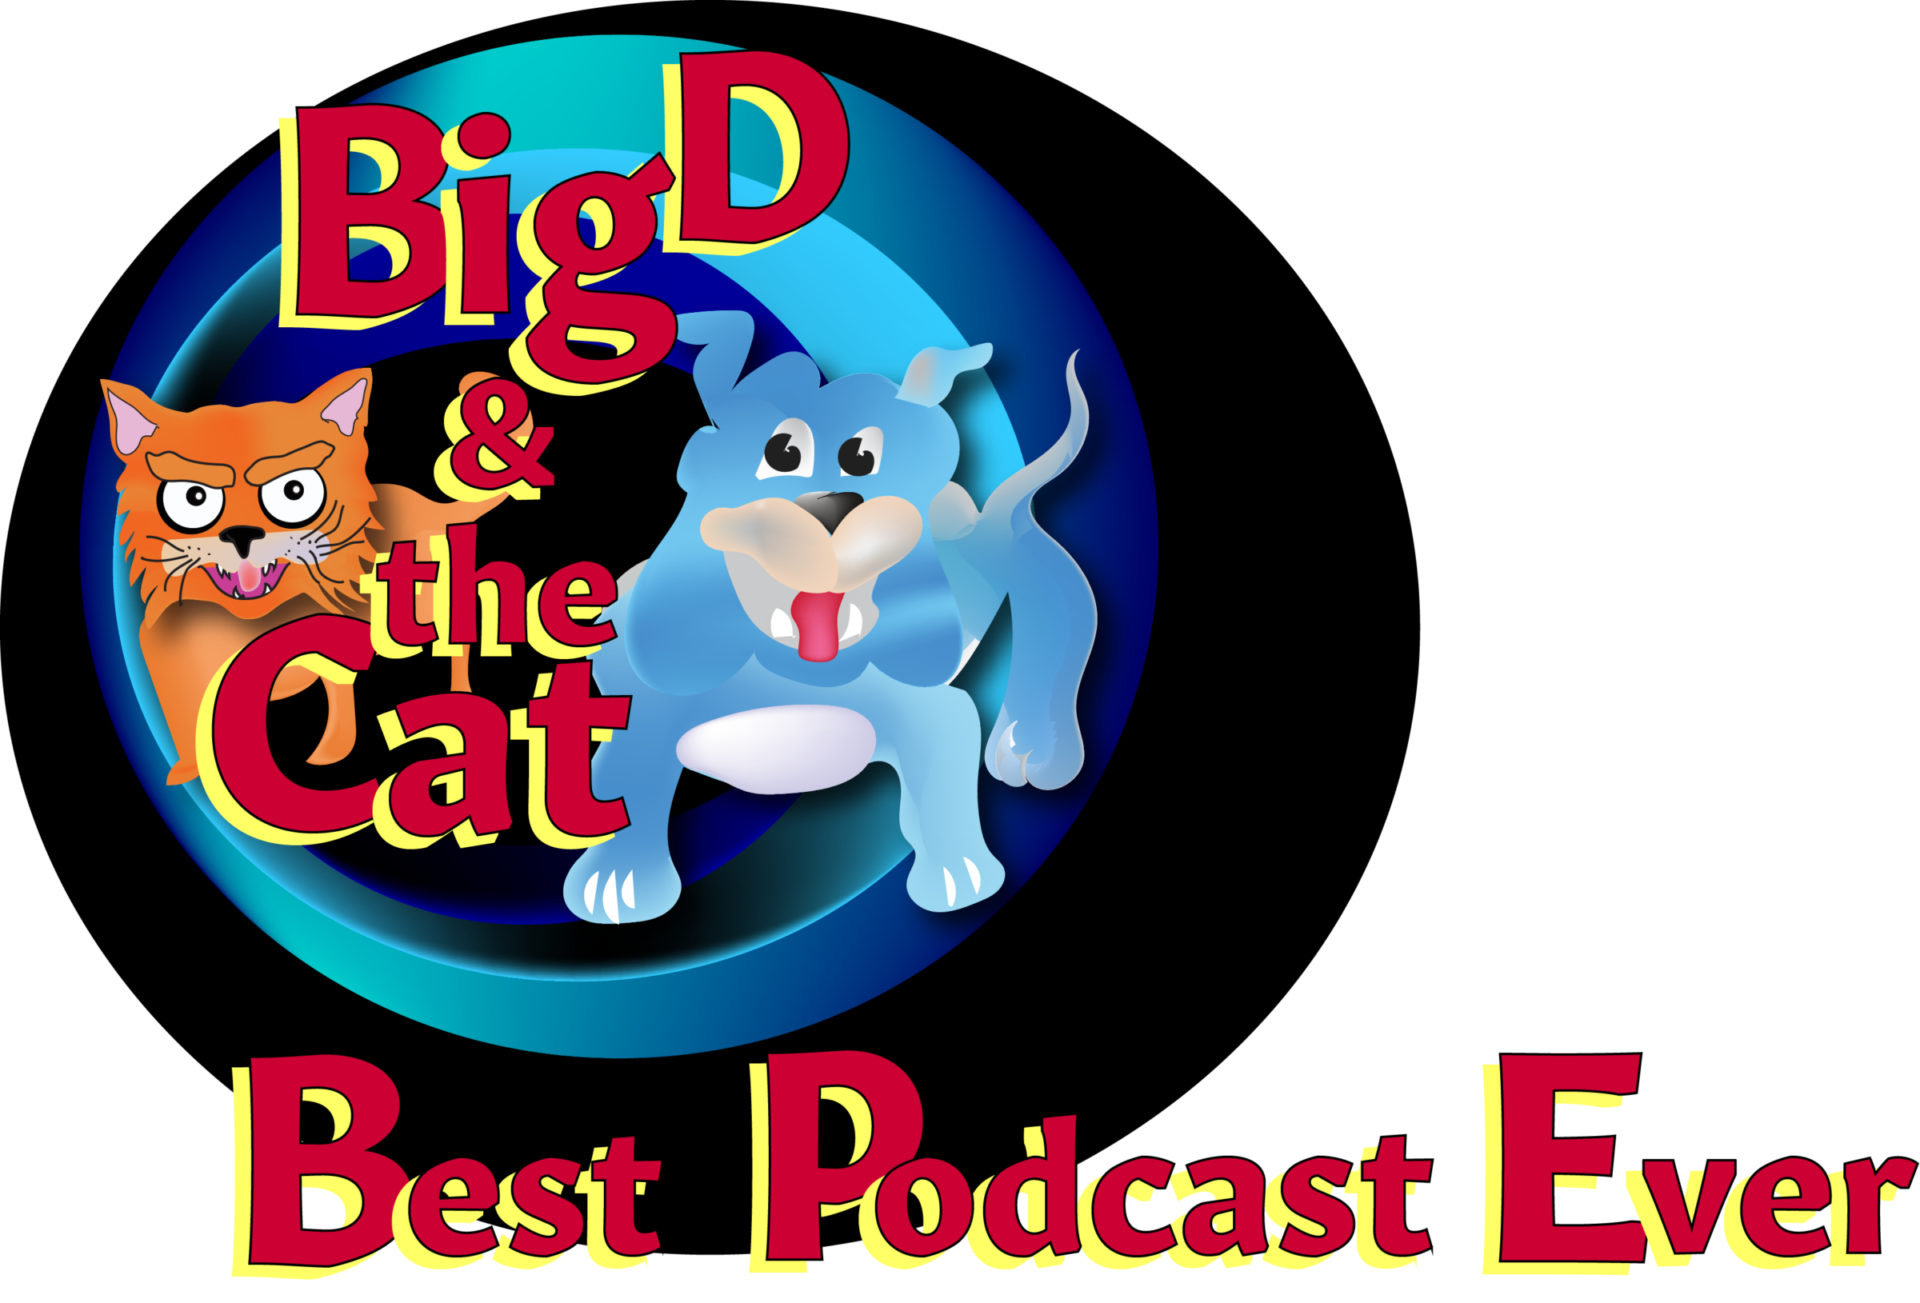 Big D & The Cat